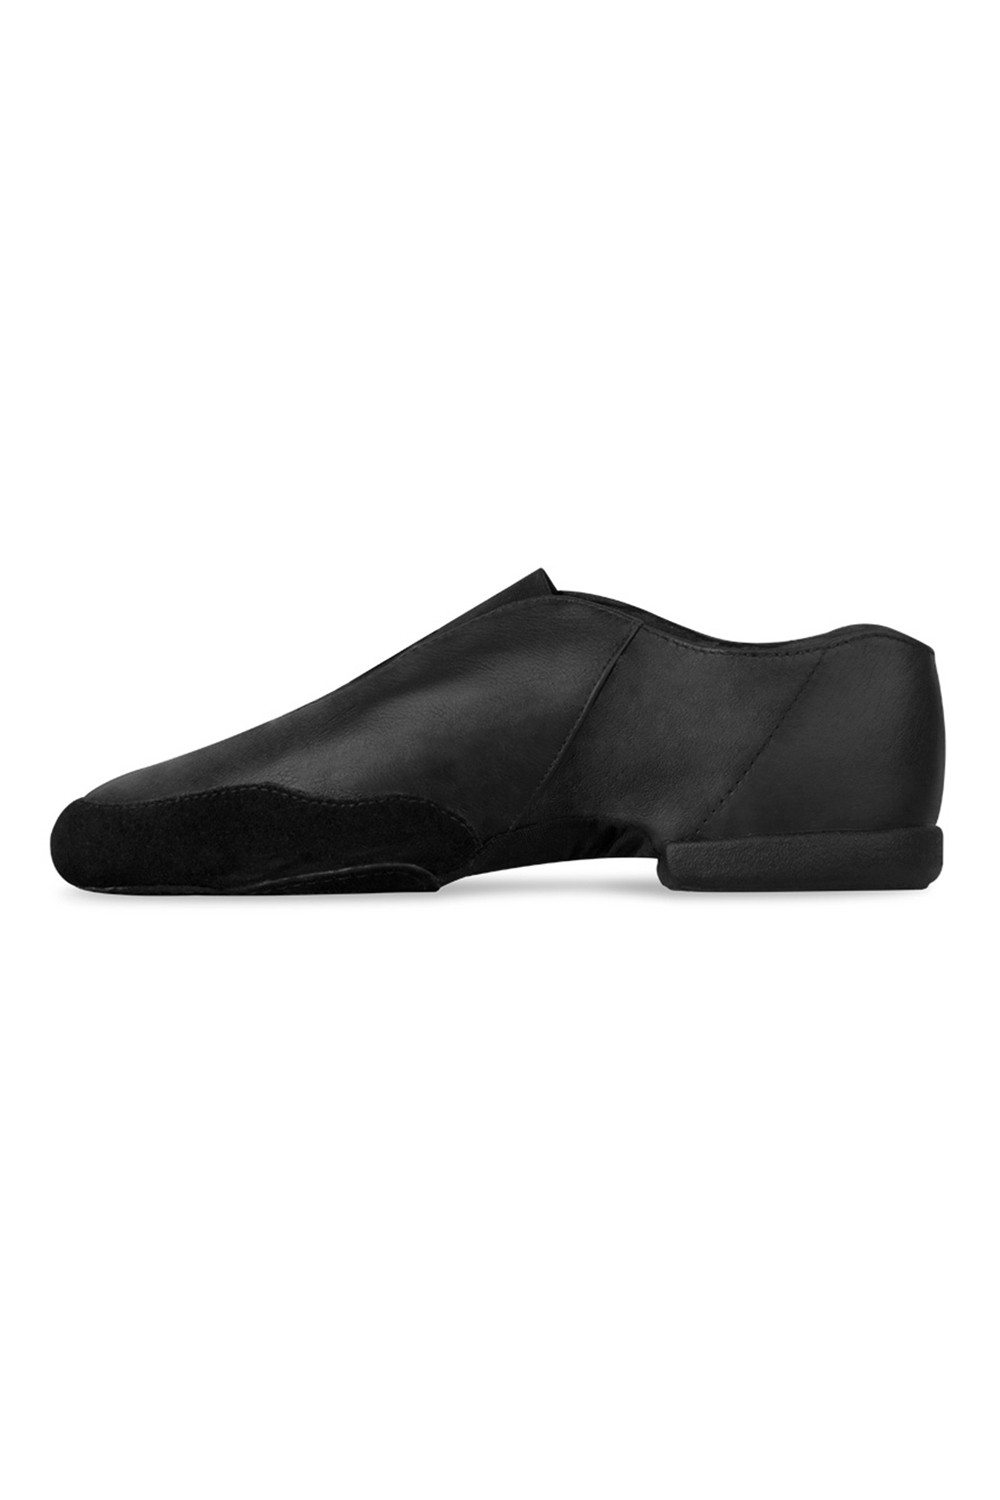 Trisole-lo Women's Jazz Shoes